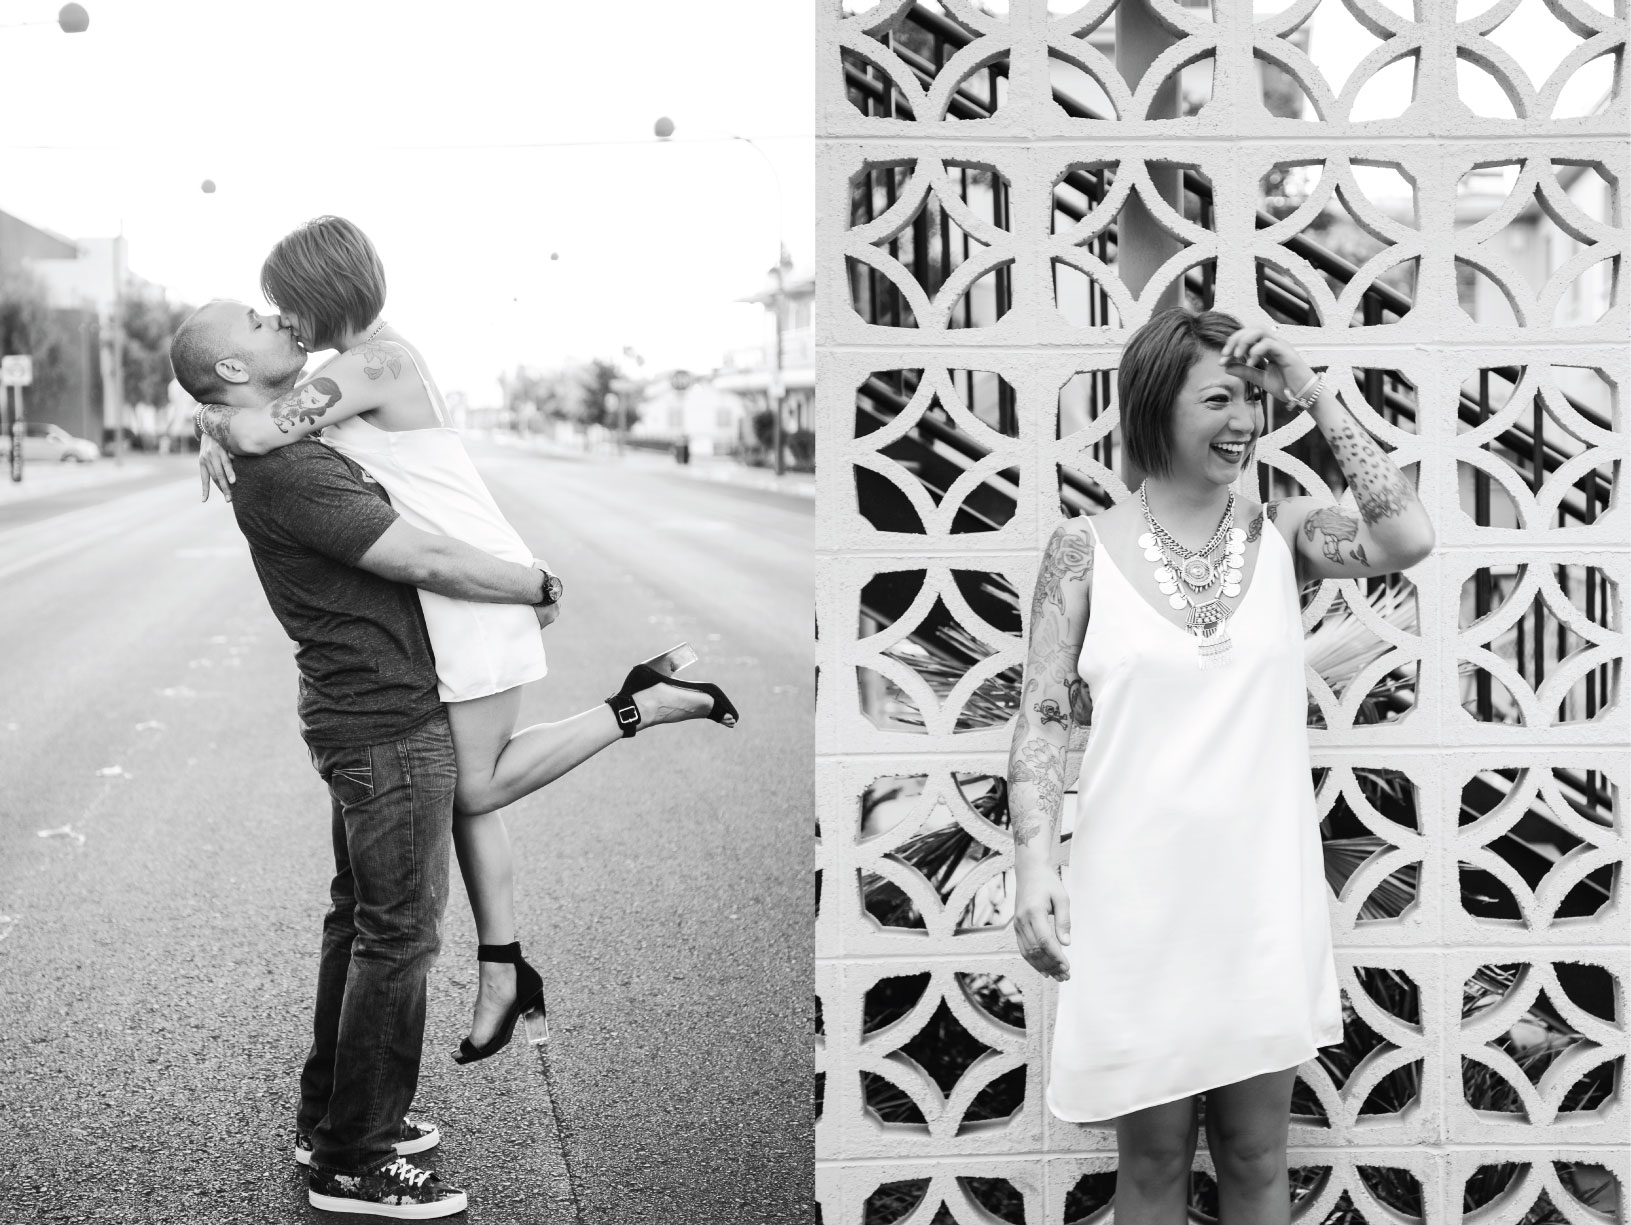 downtown engagement, rock'n roll bride, engagement session, photo shoot engagement, rock'n engagement, fun engagement session,